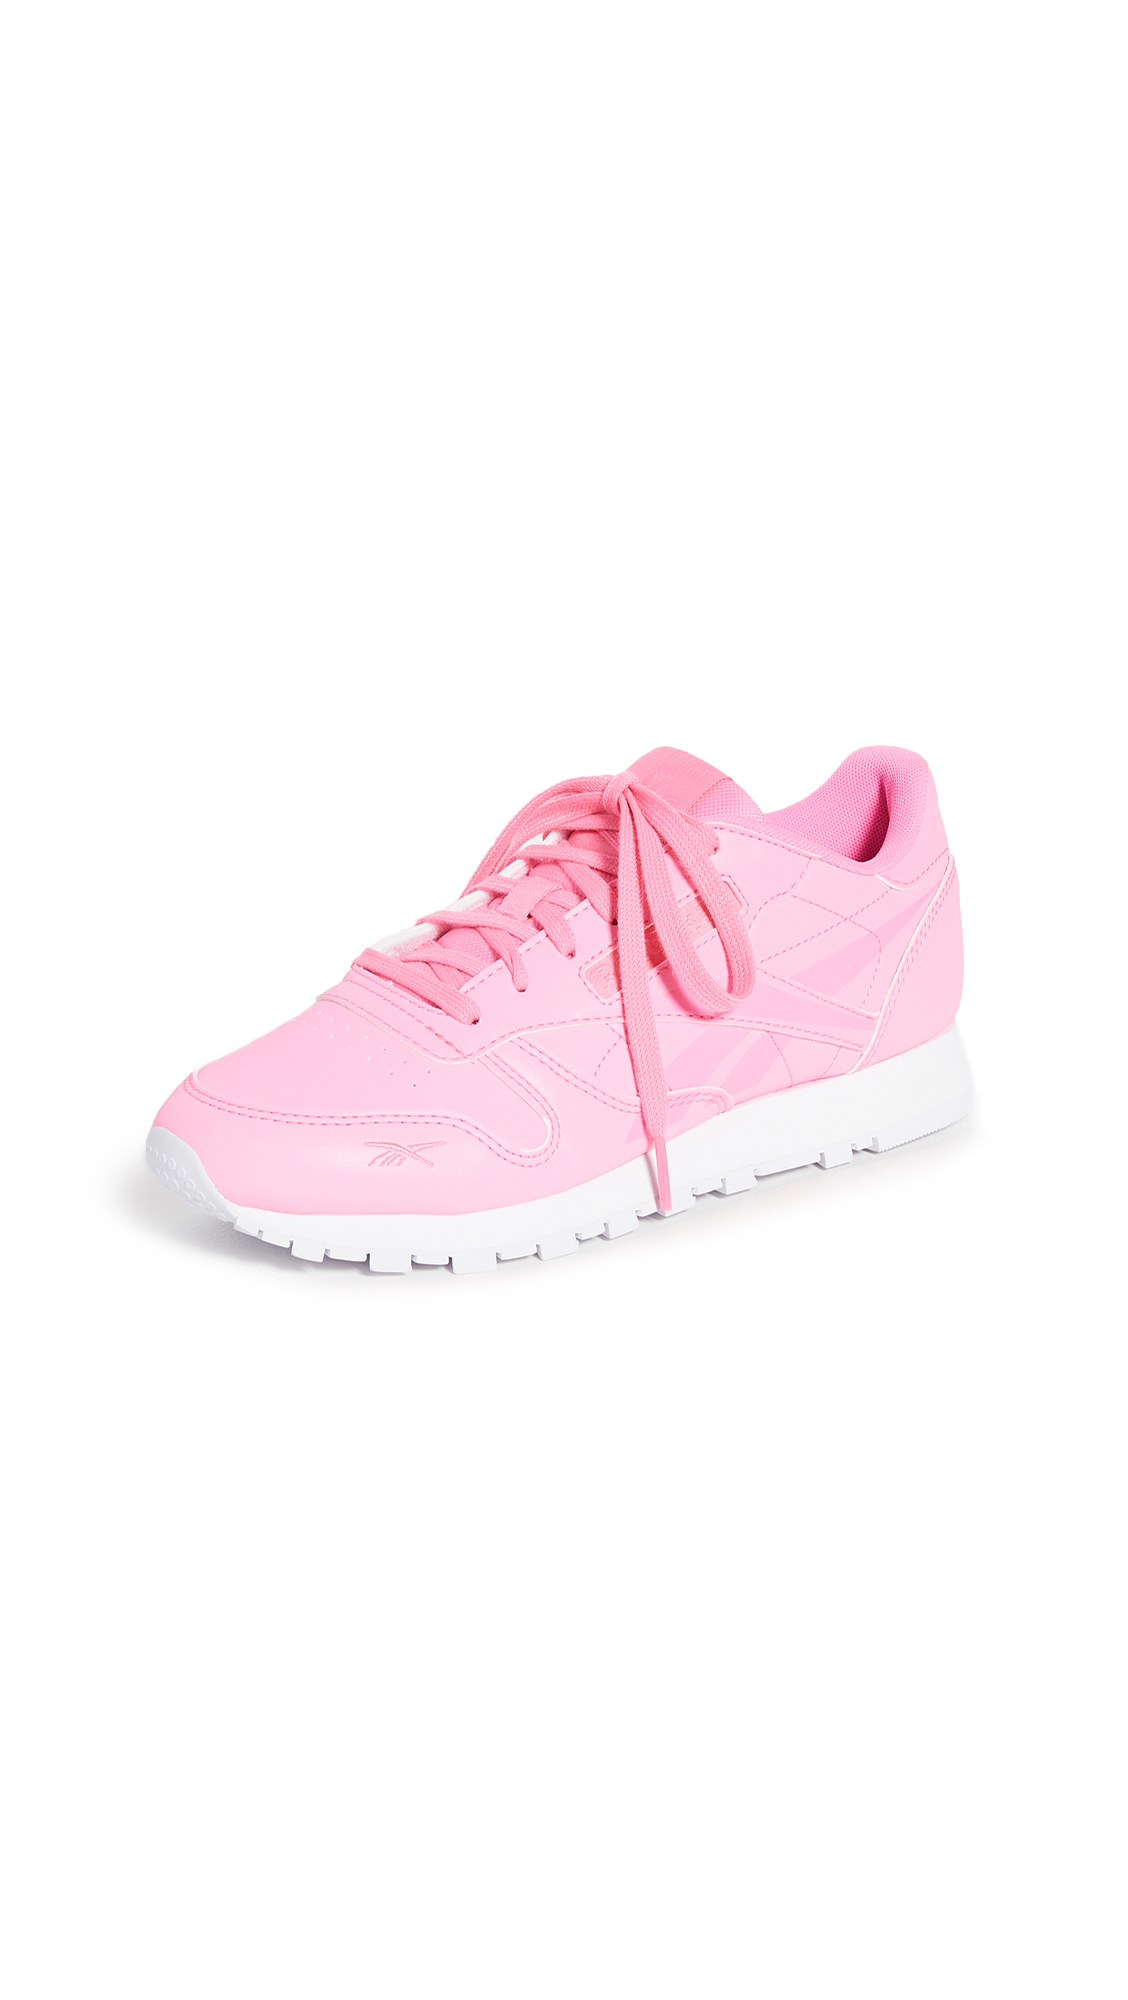 Reebok Classic Lace Up Sneakers